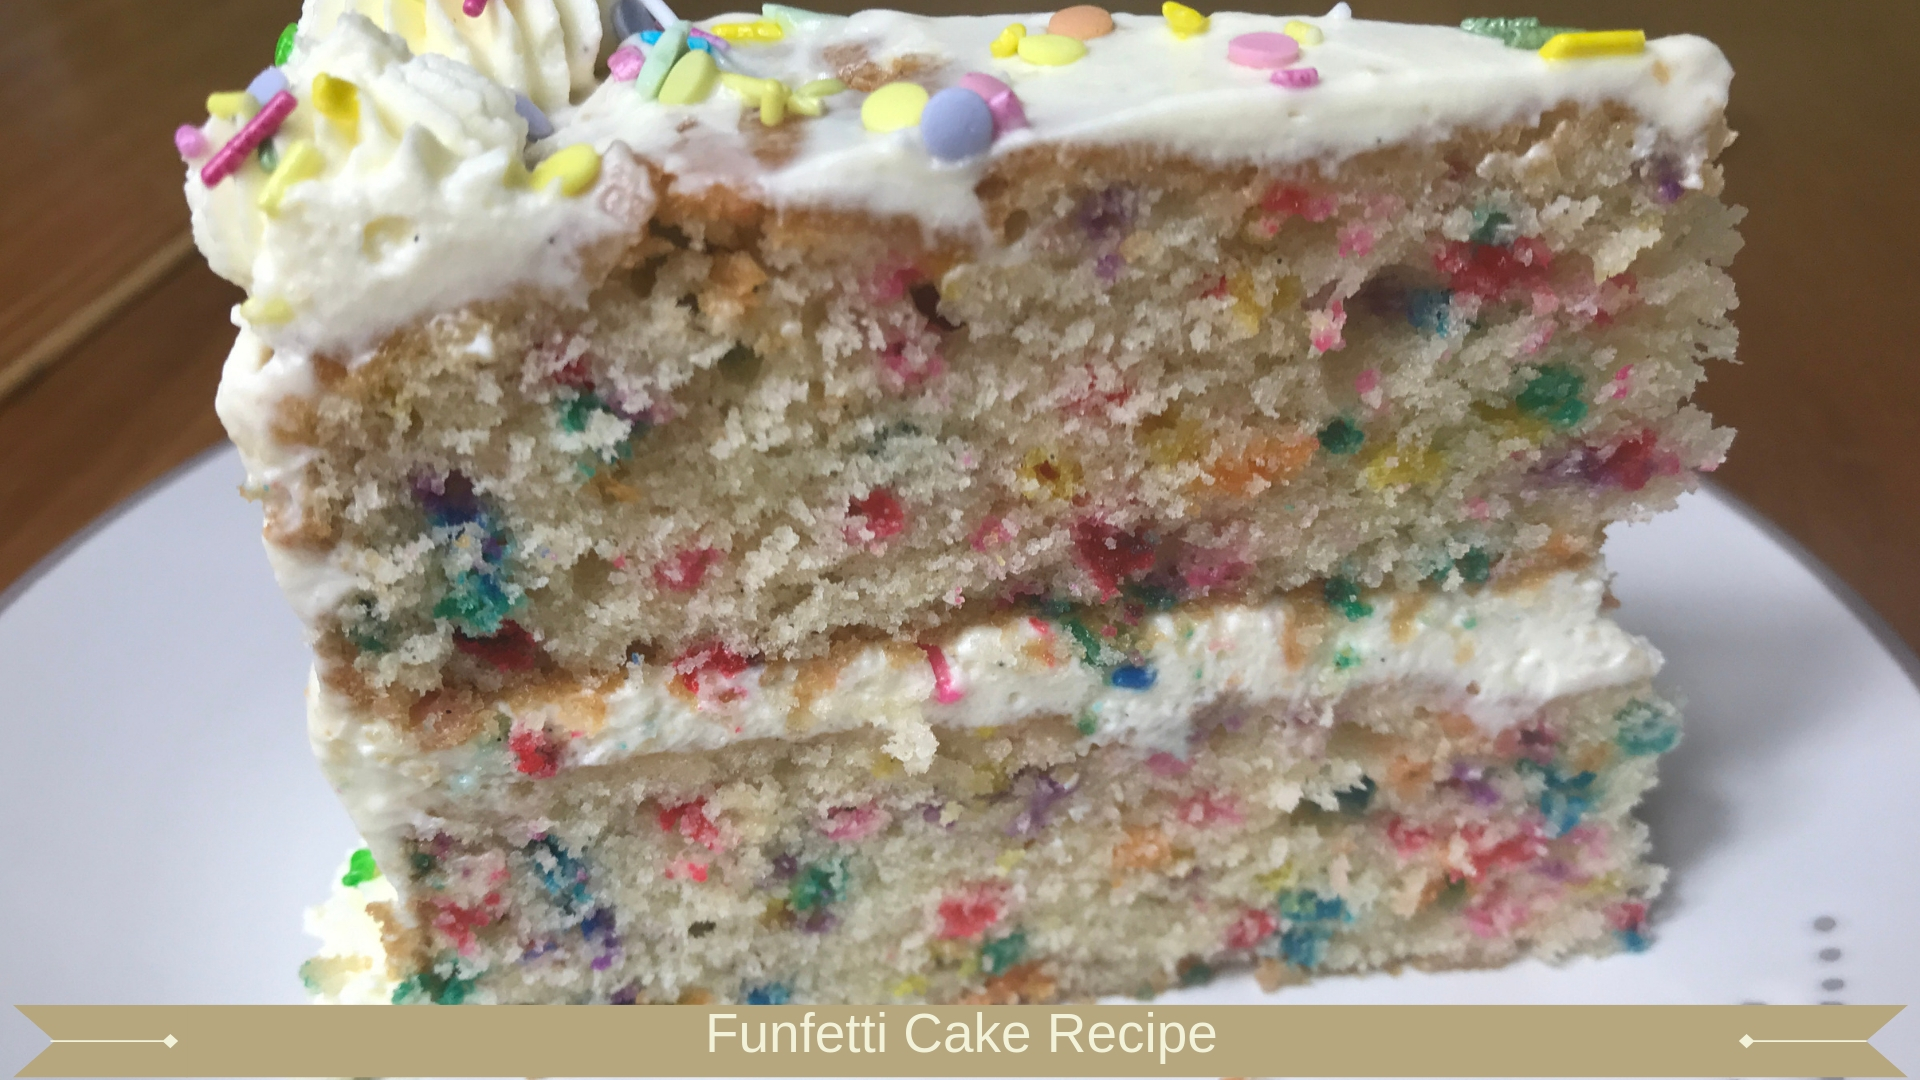 Funfetti Cake Recipe - Meadow Brown Bakery